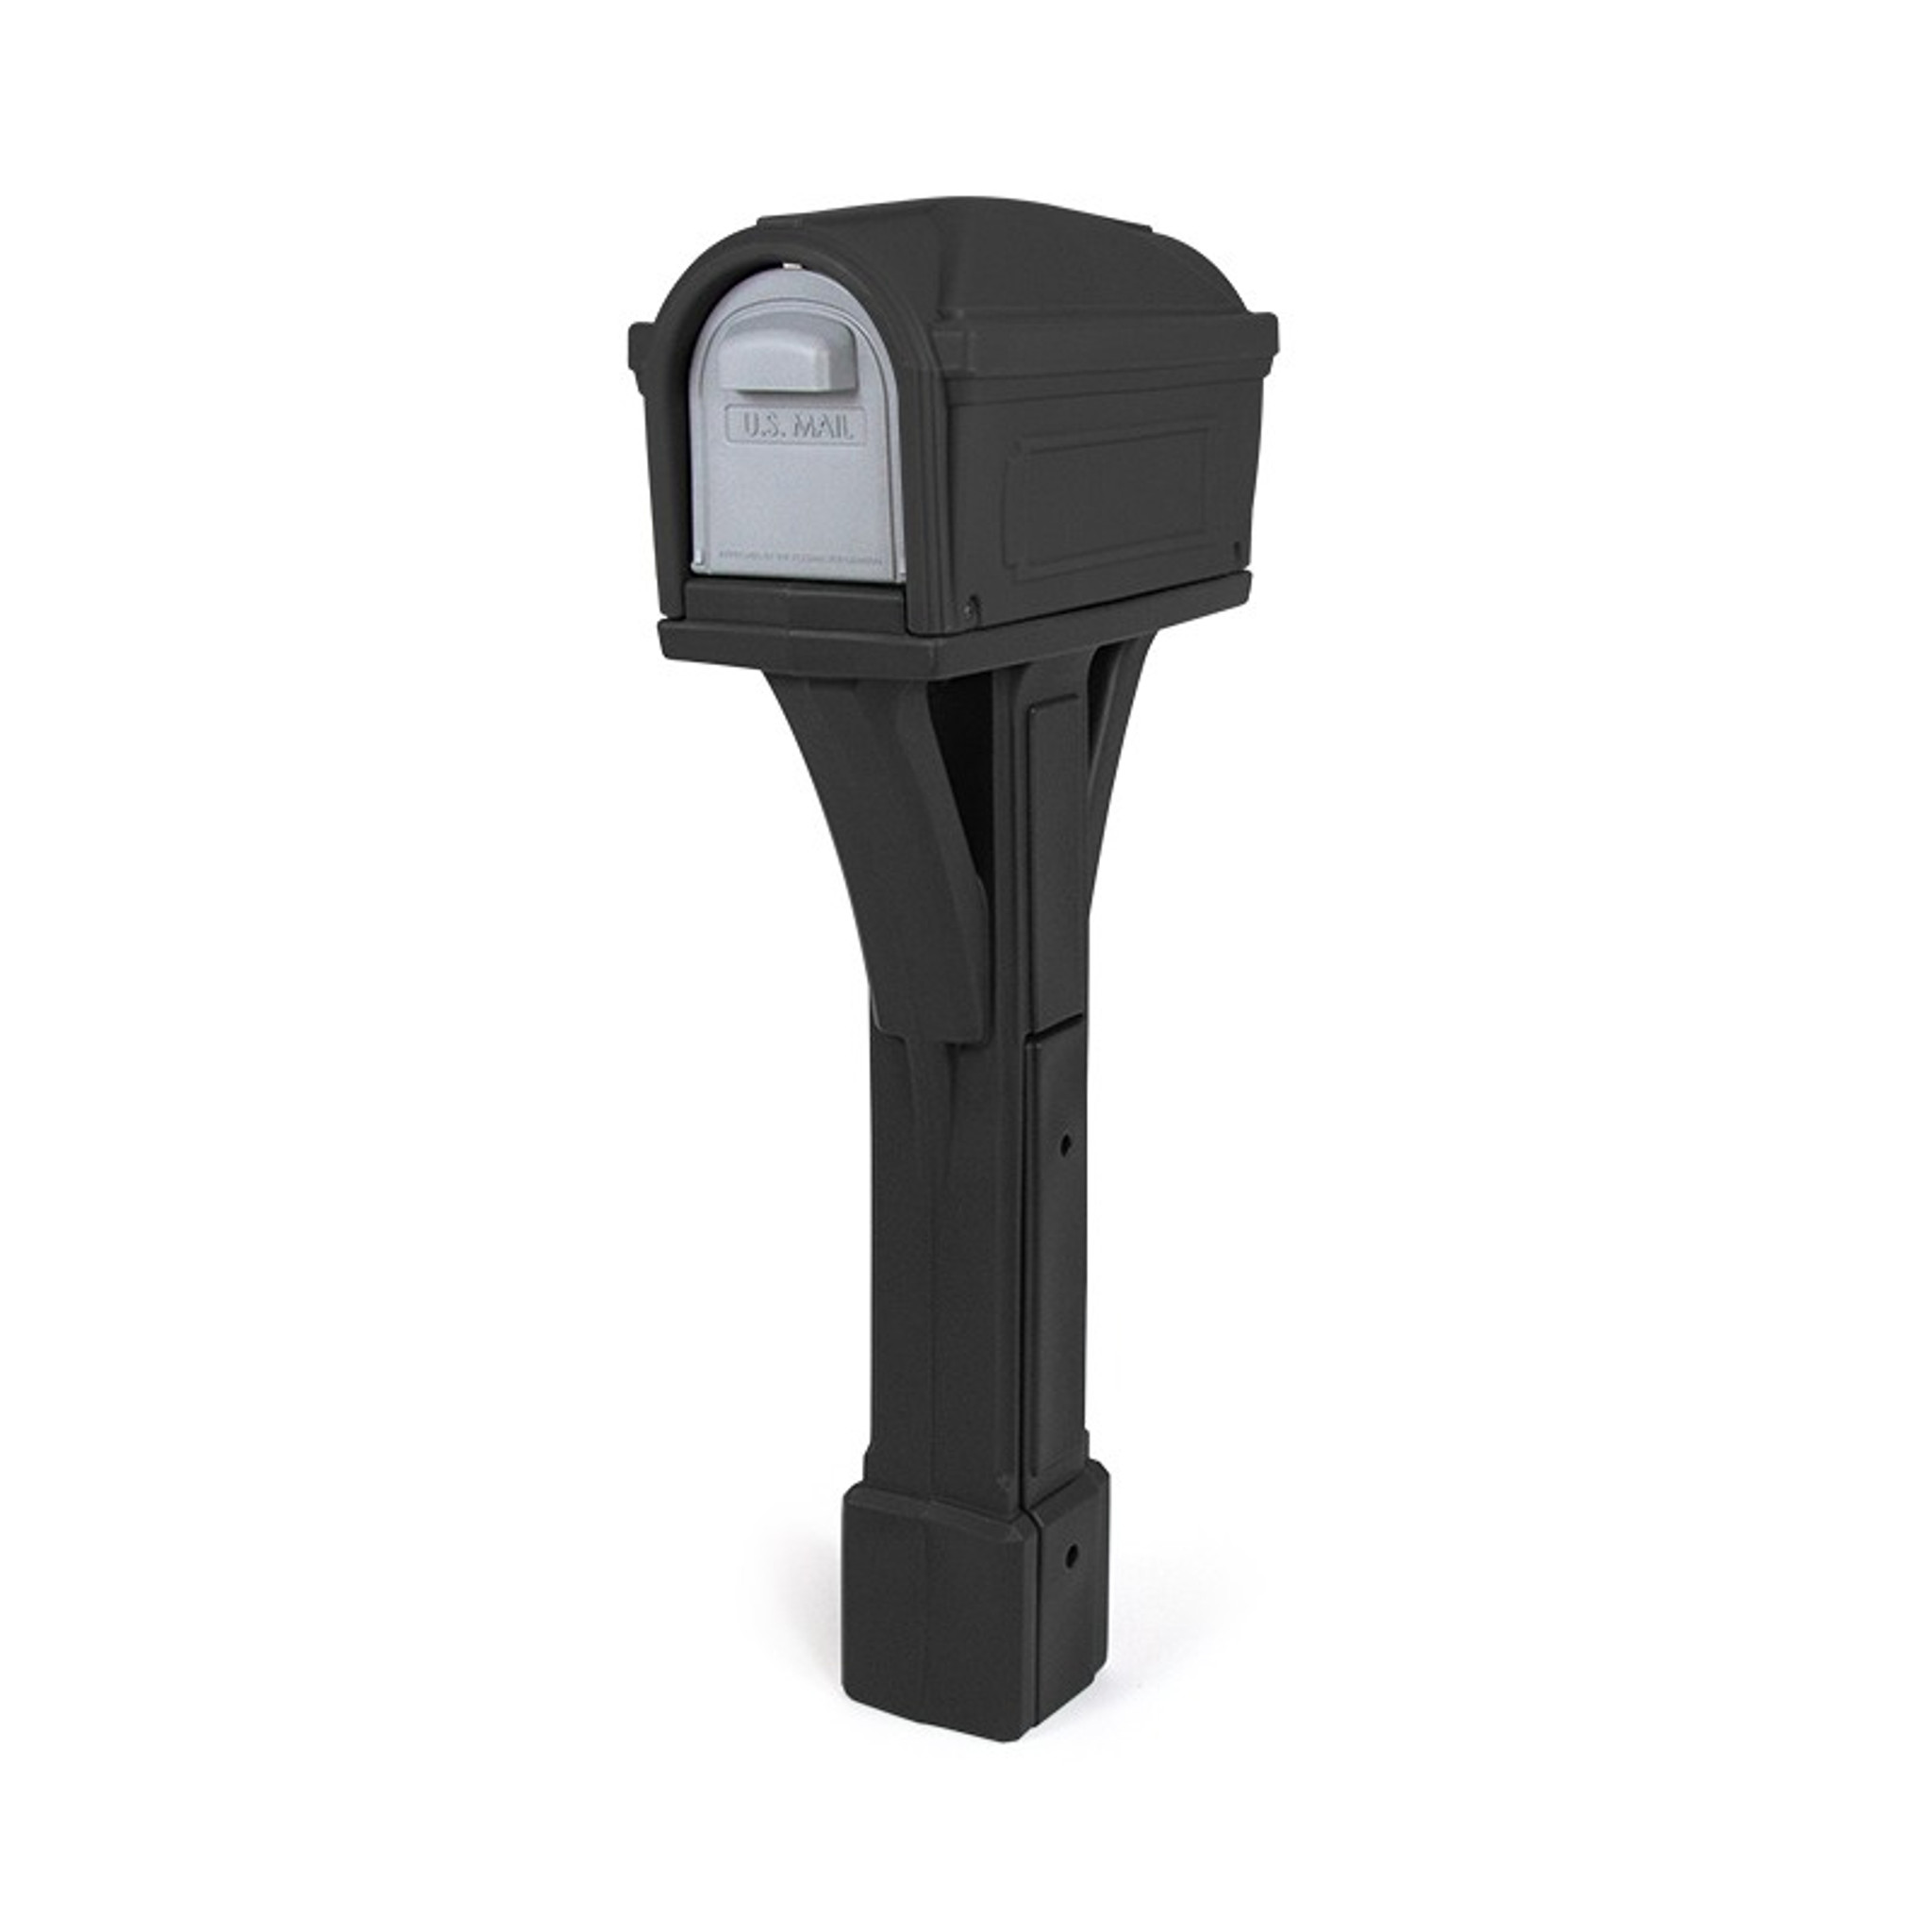 mailbox.  Mailbox Available Simplay3 Classic Mailbox Is A Durable Heavy Duty Allinone  Plastic Mailbox  On